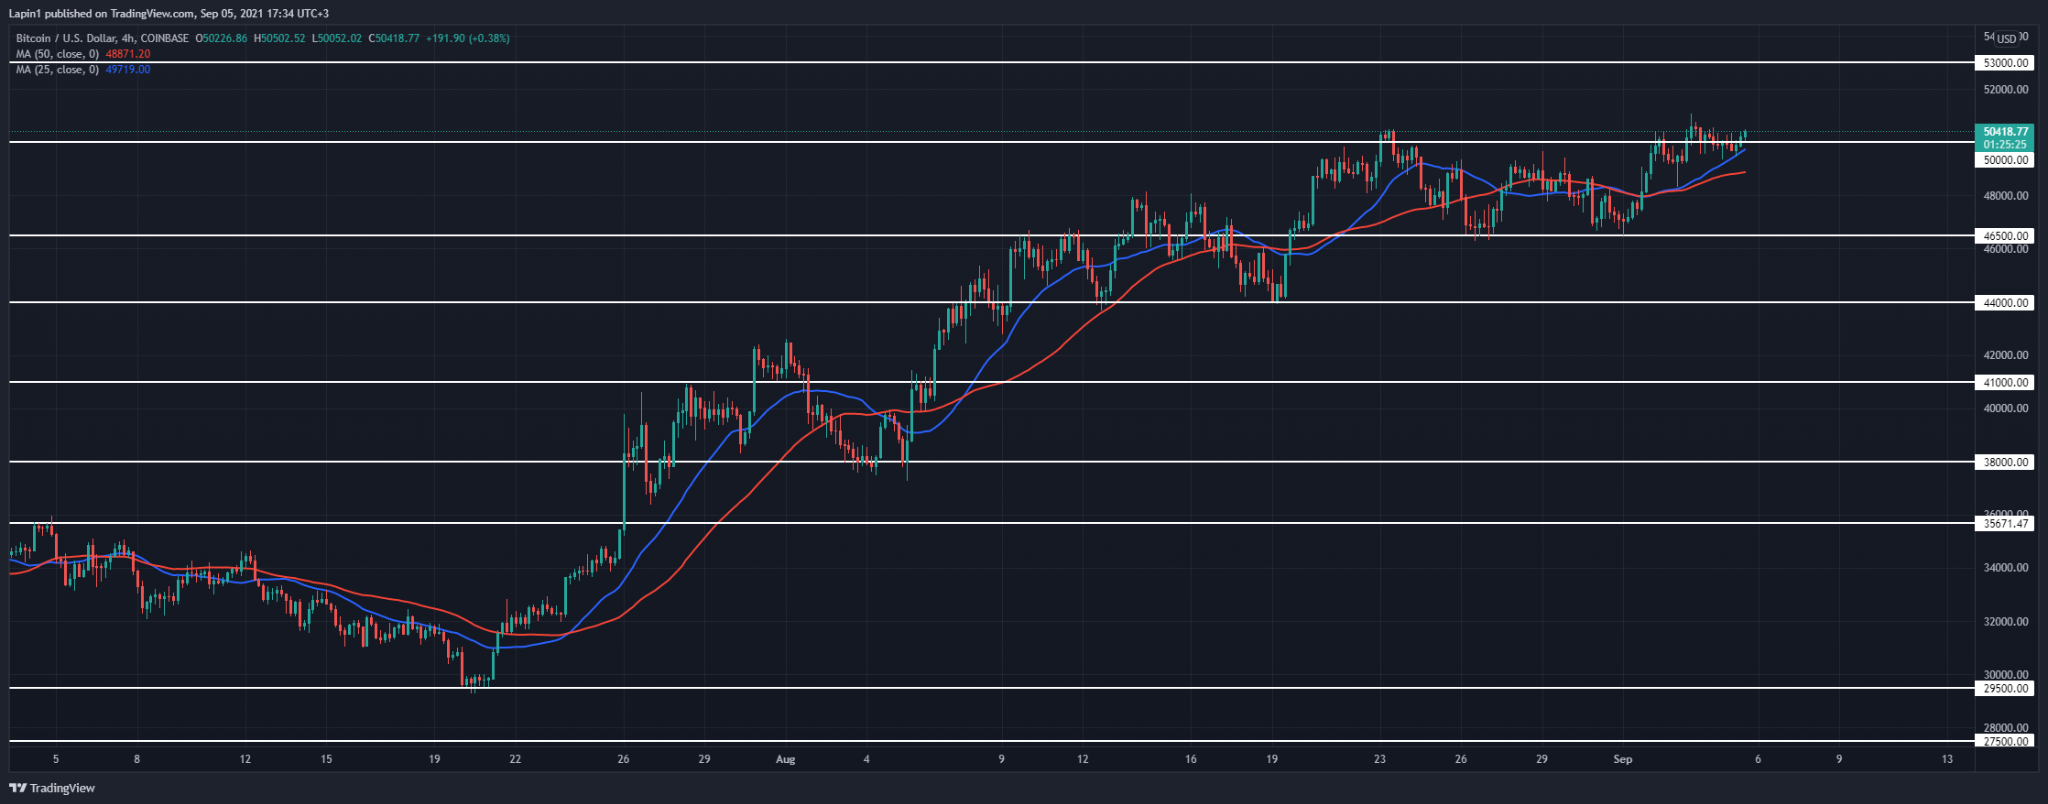 Bitcoin Price Analysis: BTC moves back above $50,000, ready for new highs?